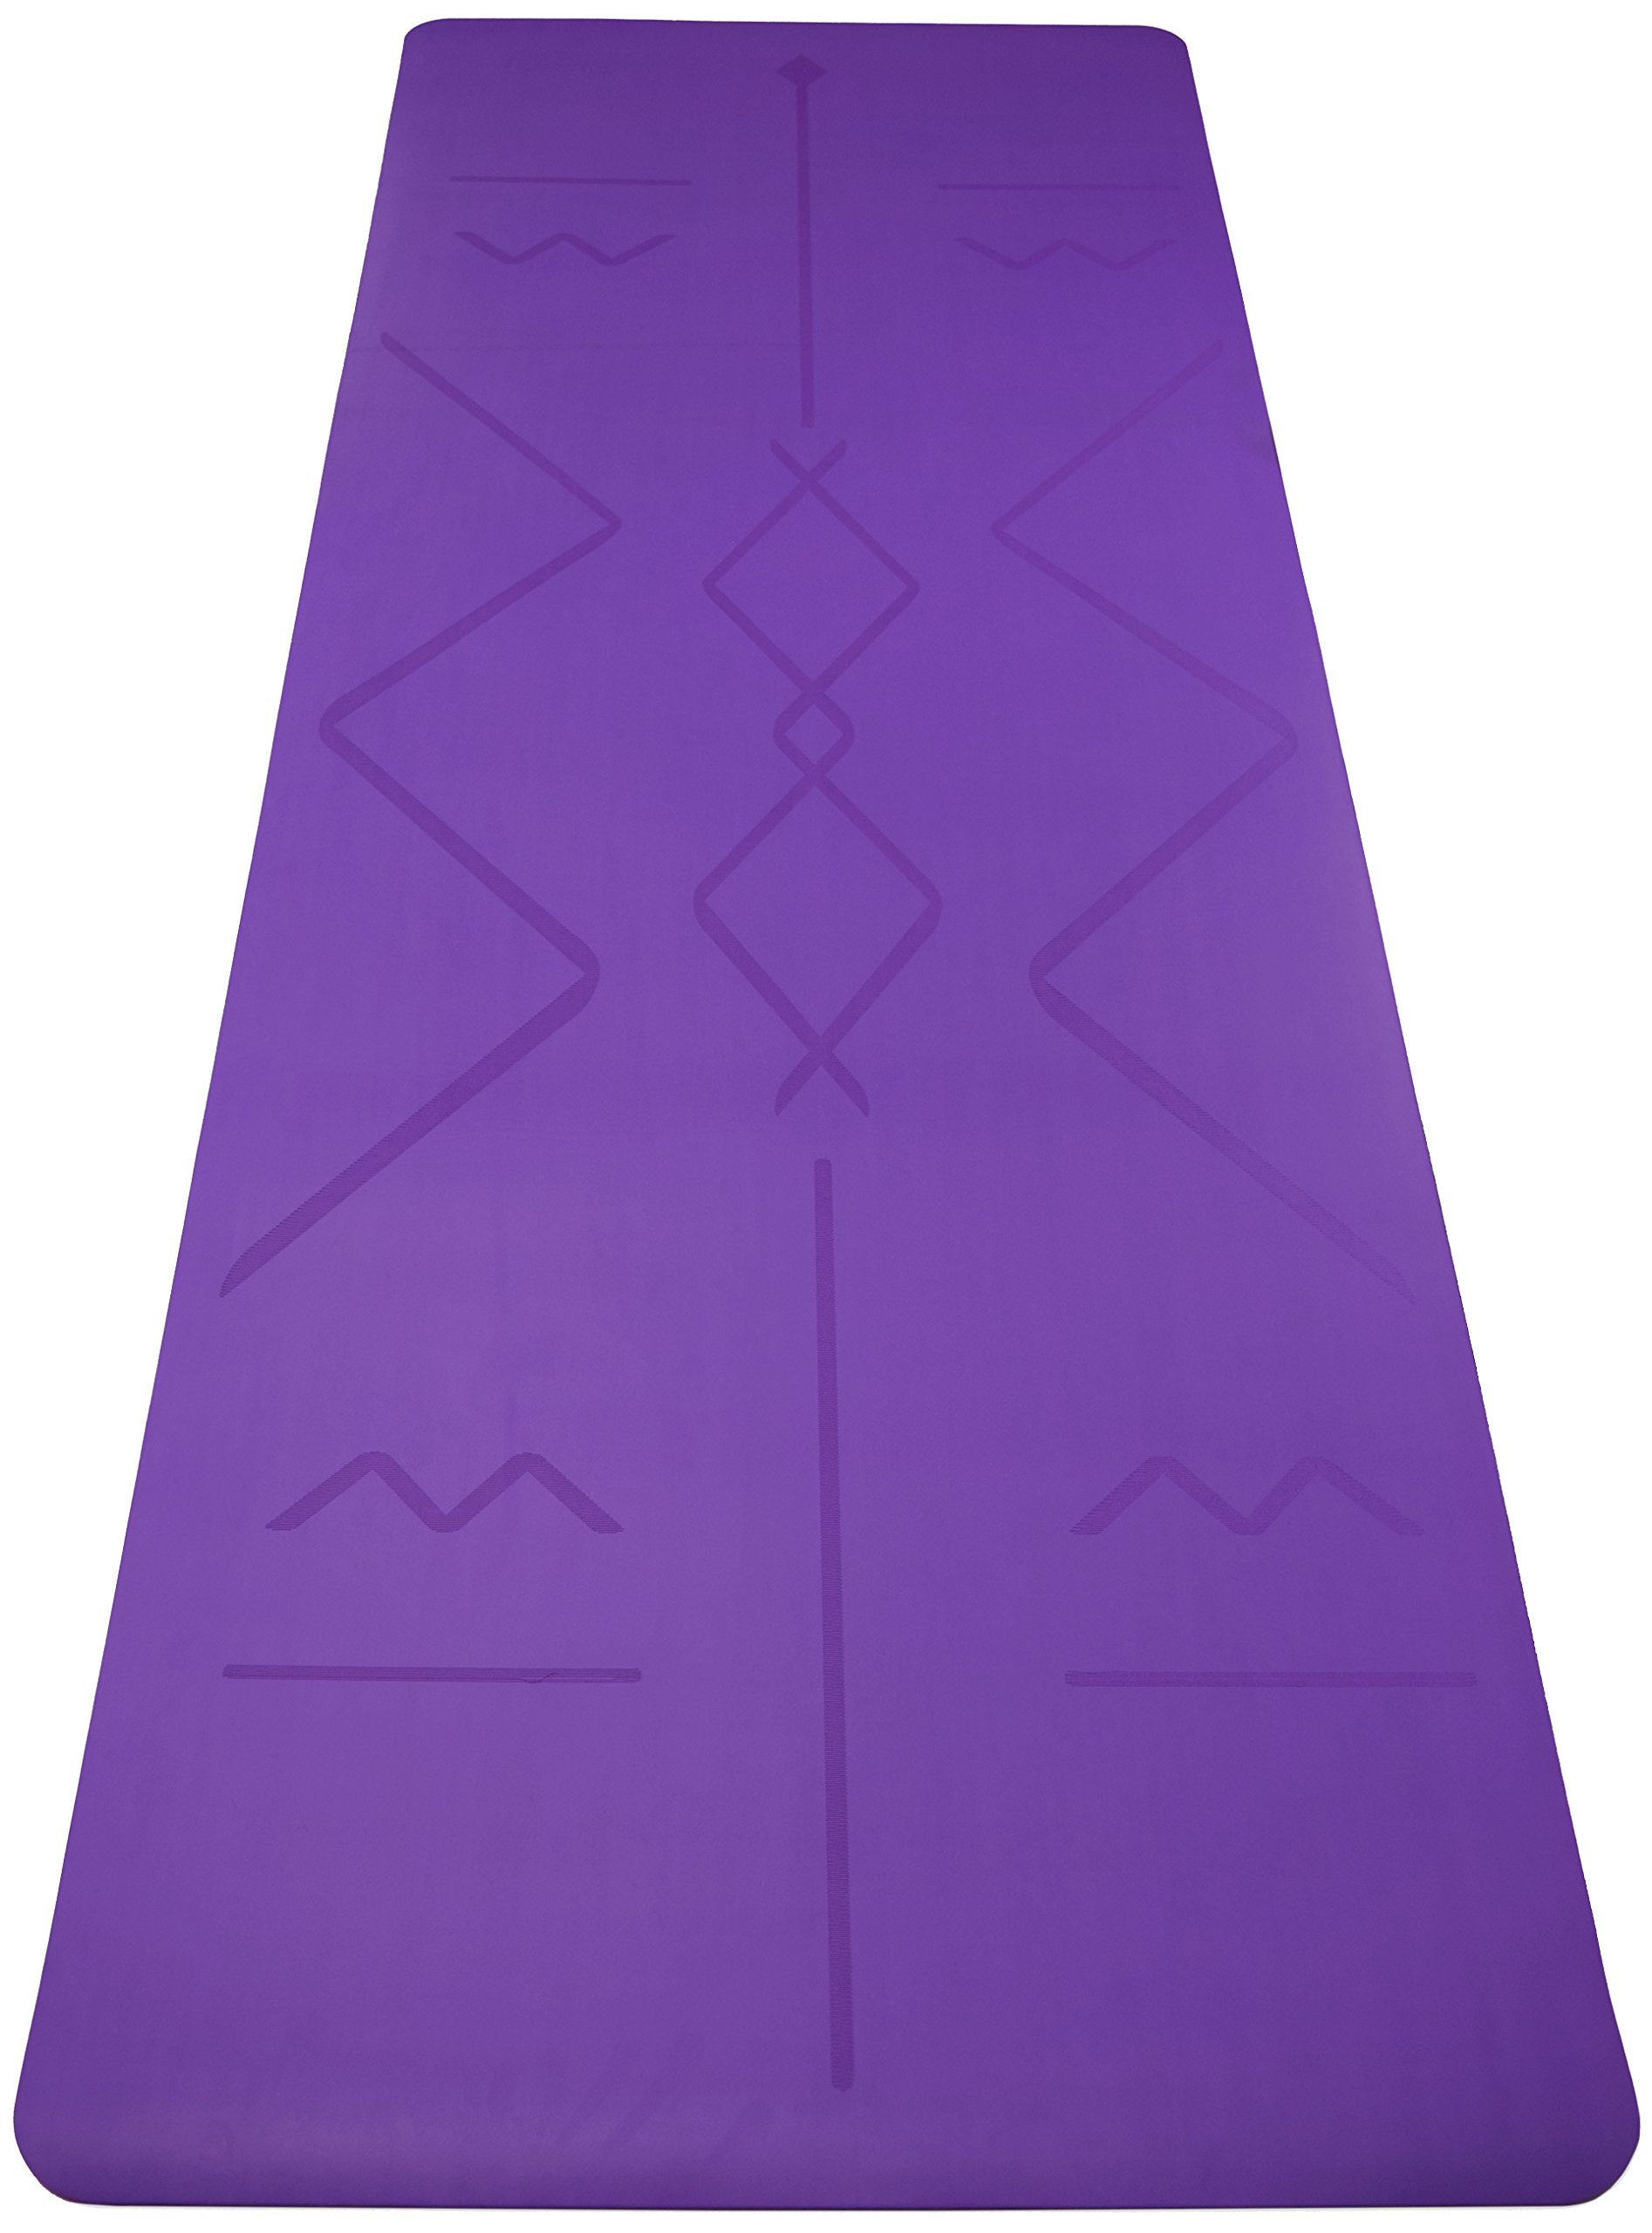 Box of 4 - Purple Original OMphibian Yoga Mat with Laser Etched Alignment Lines – The Best Non - Slip (Wet or Dry) Eco-Friendly Natural Rubber Base Yoga Mat with Laser Etched Alignment Lines